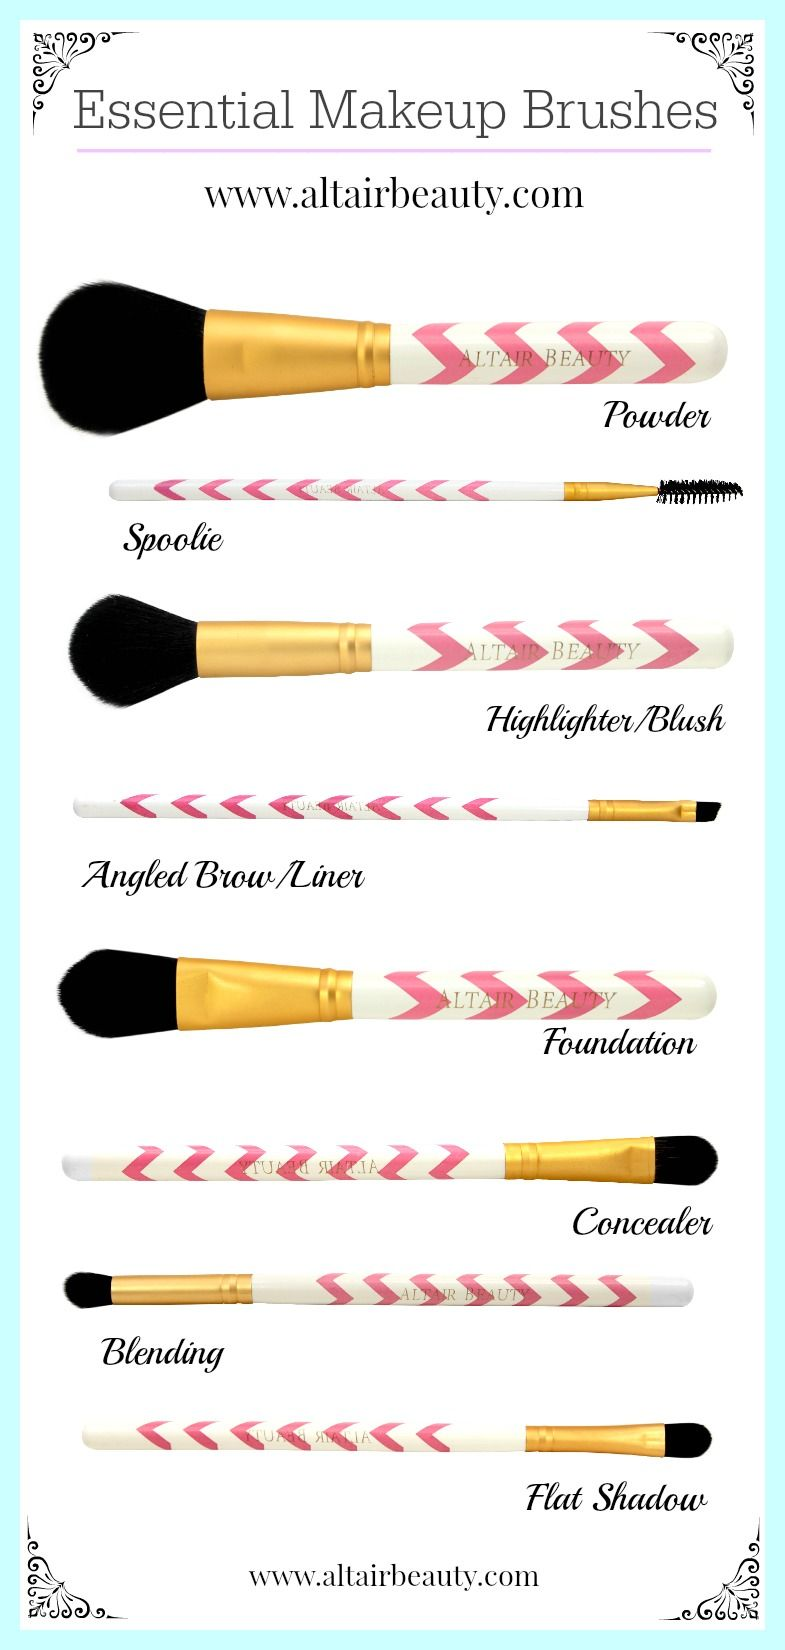 Essential Makeup Brushes from Altair Beauty! http//www